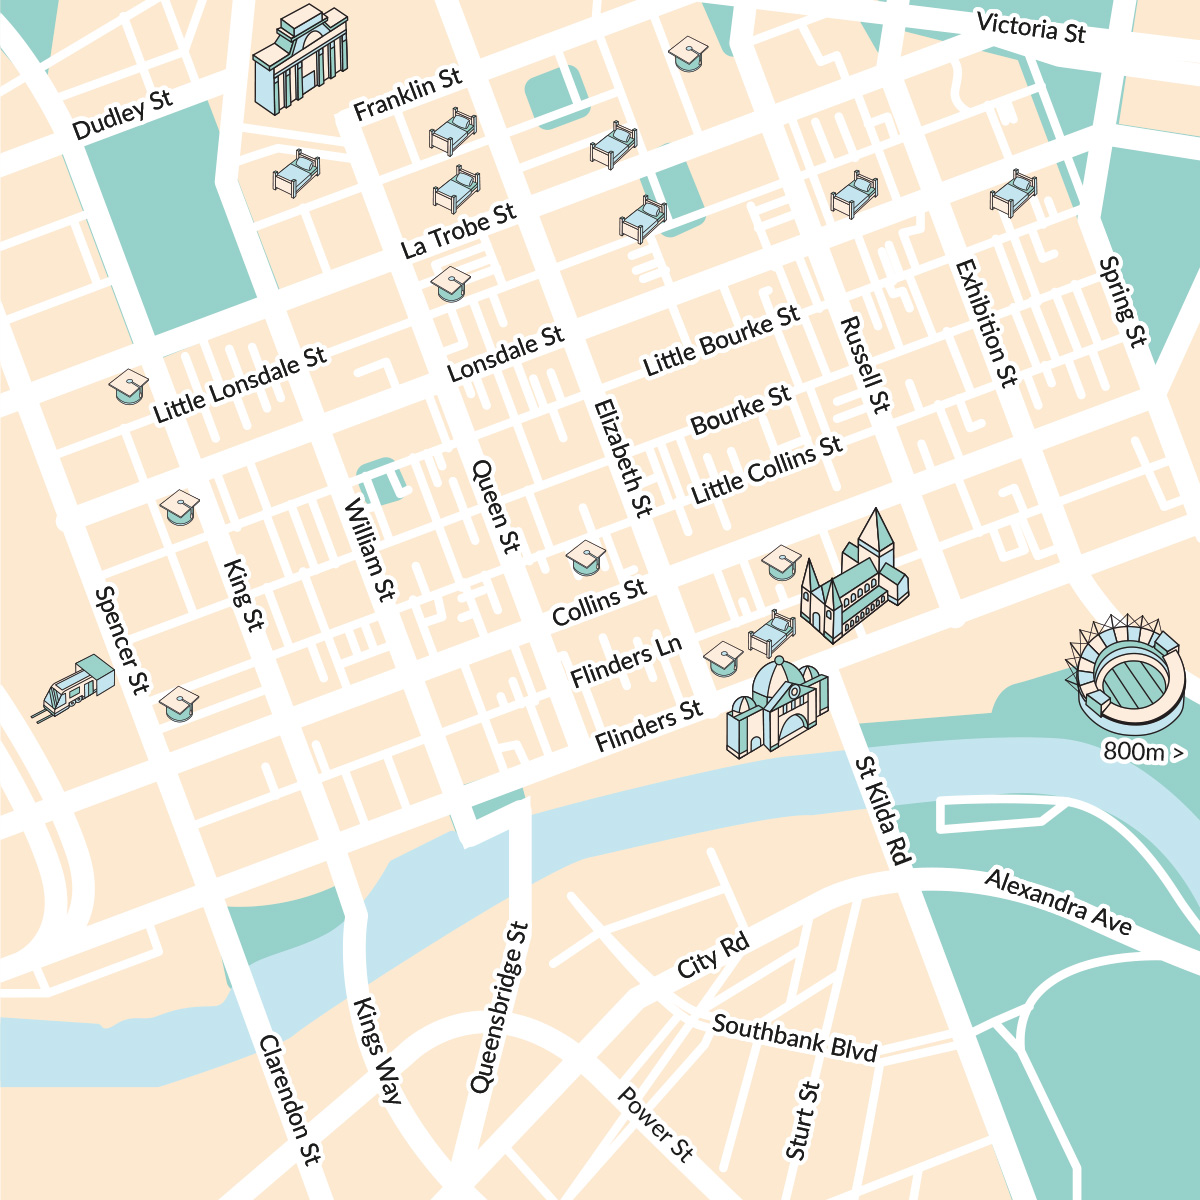 Australian cities illustrated maps preview